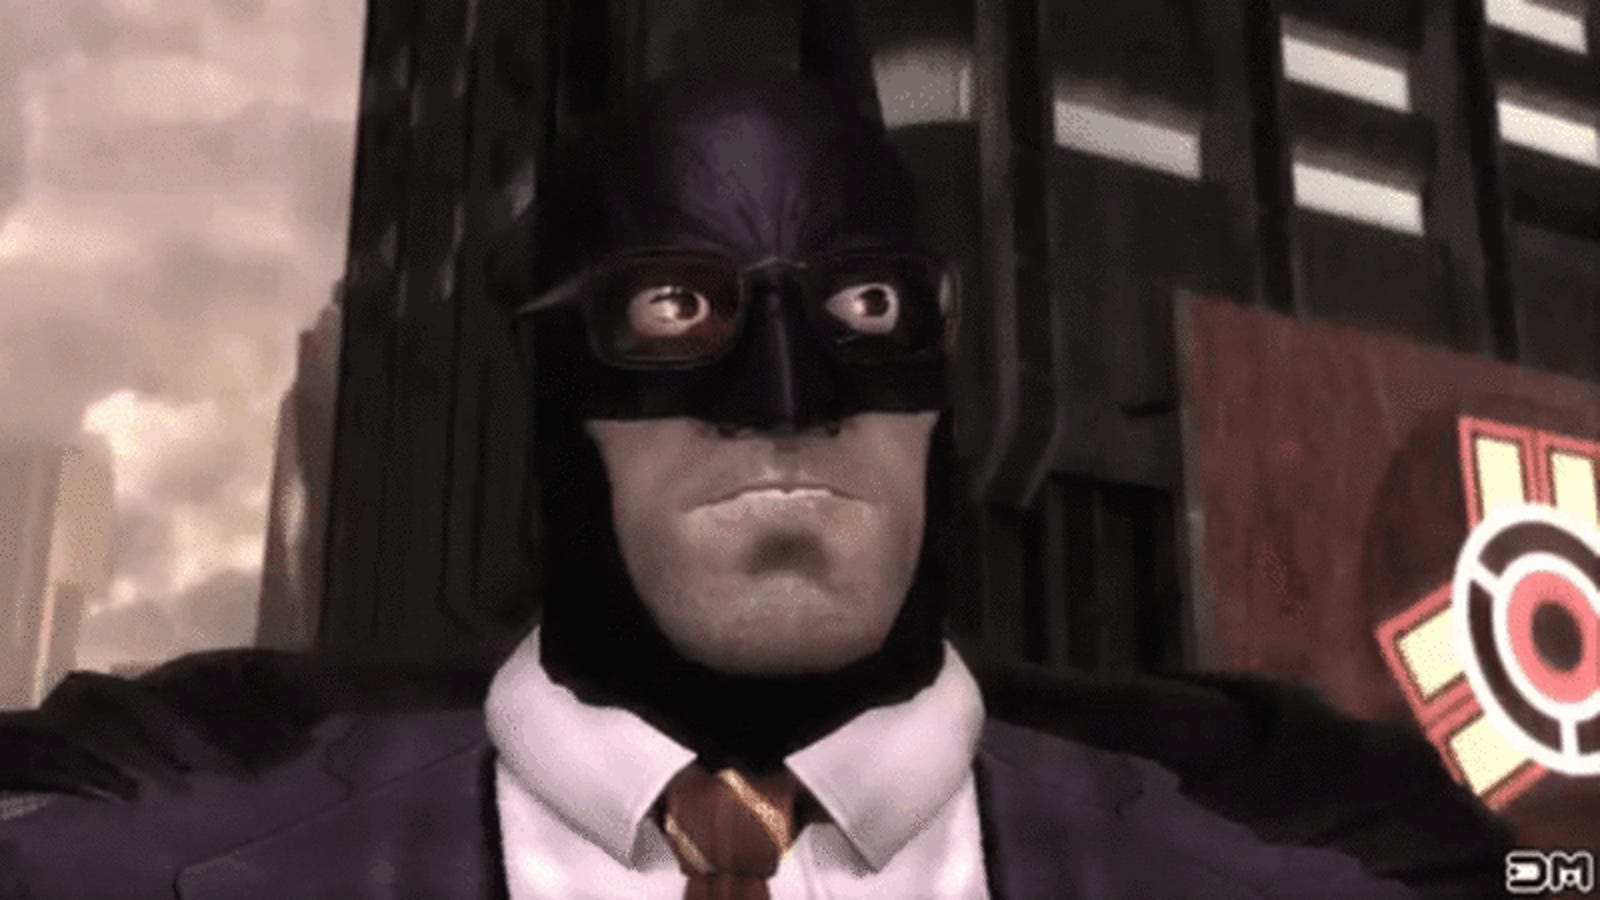 Watch Batman Pose As Every Other Character In Injustice